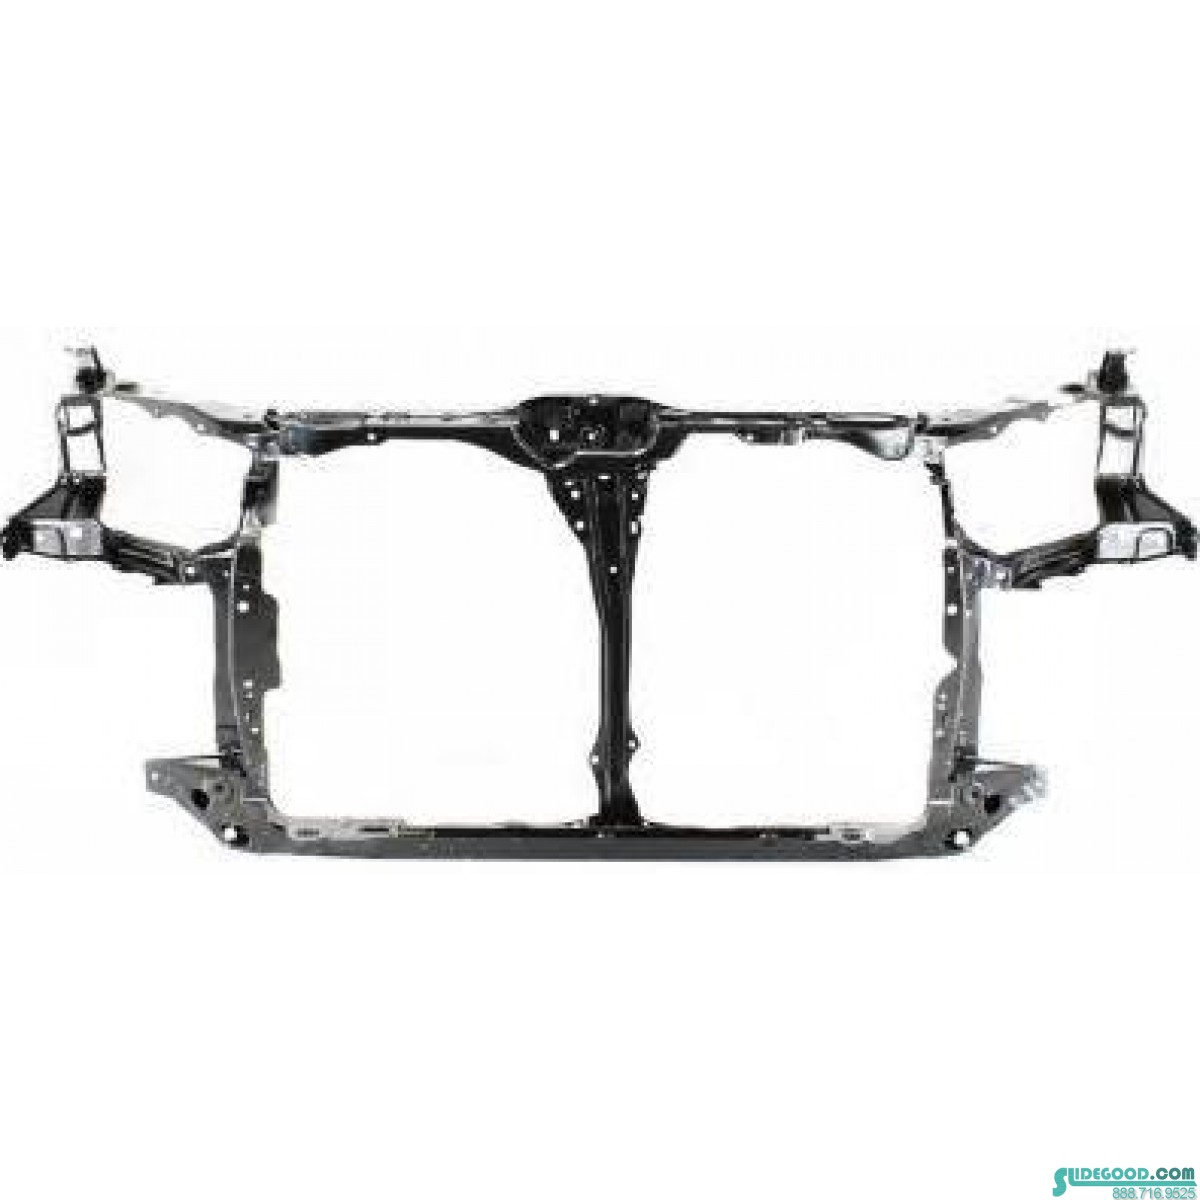 02 06 Acura Rsx Core Support New